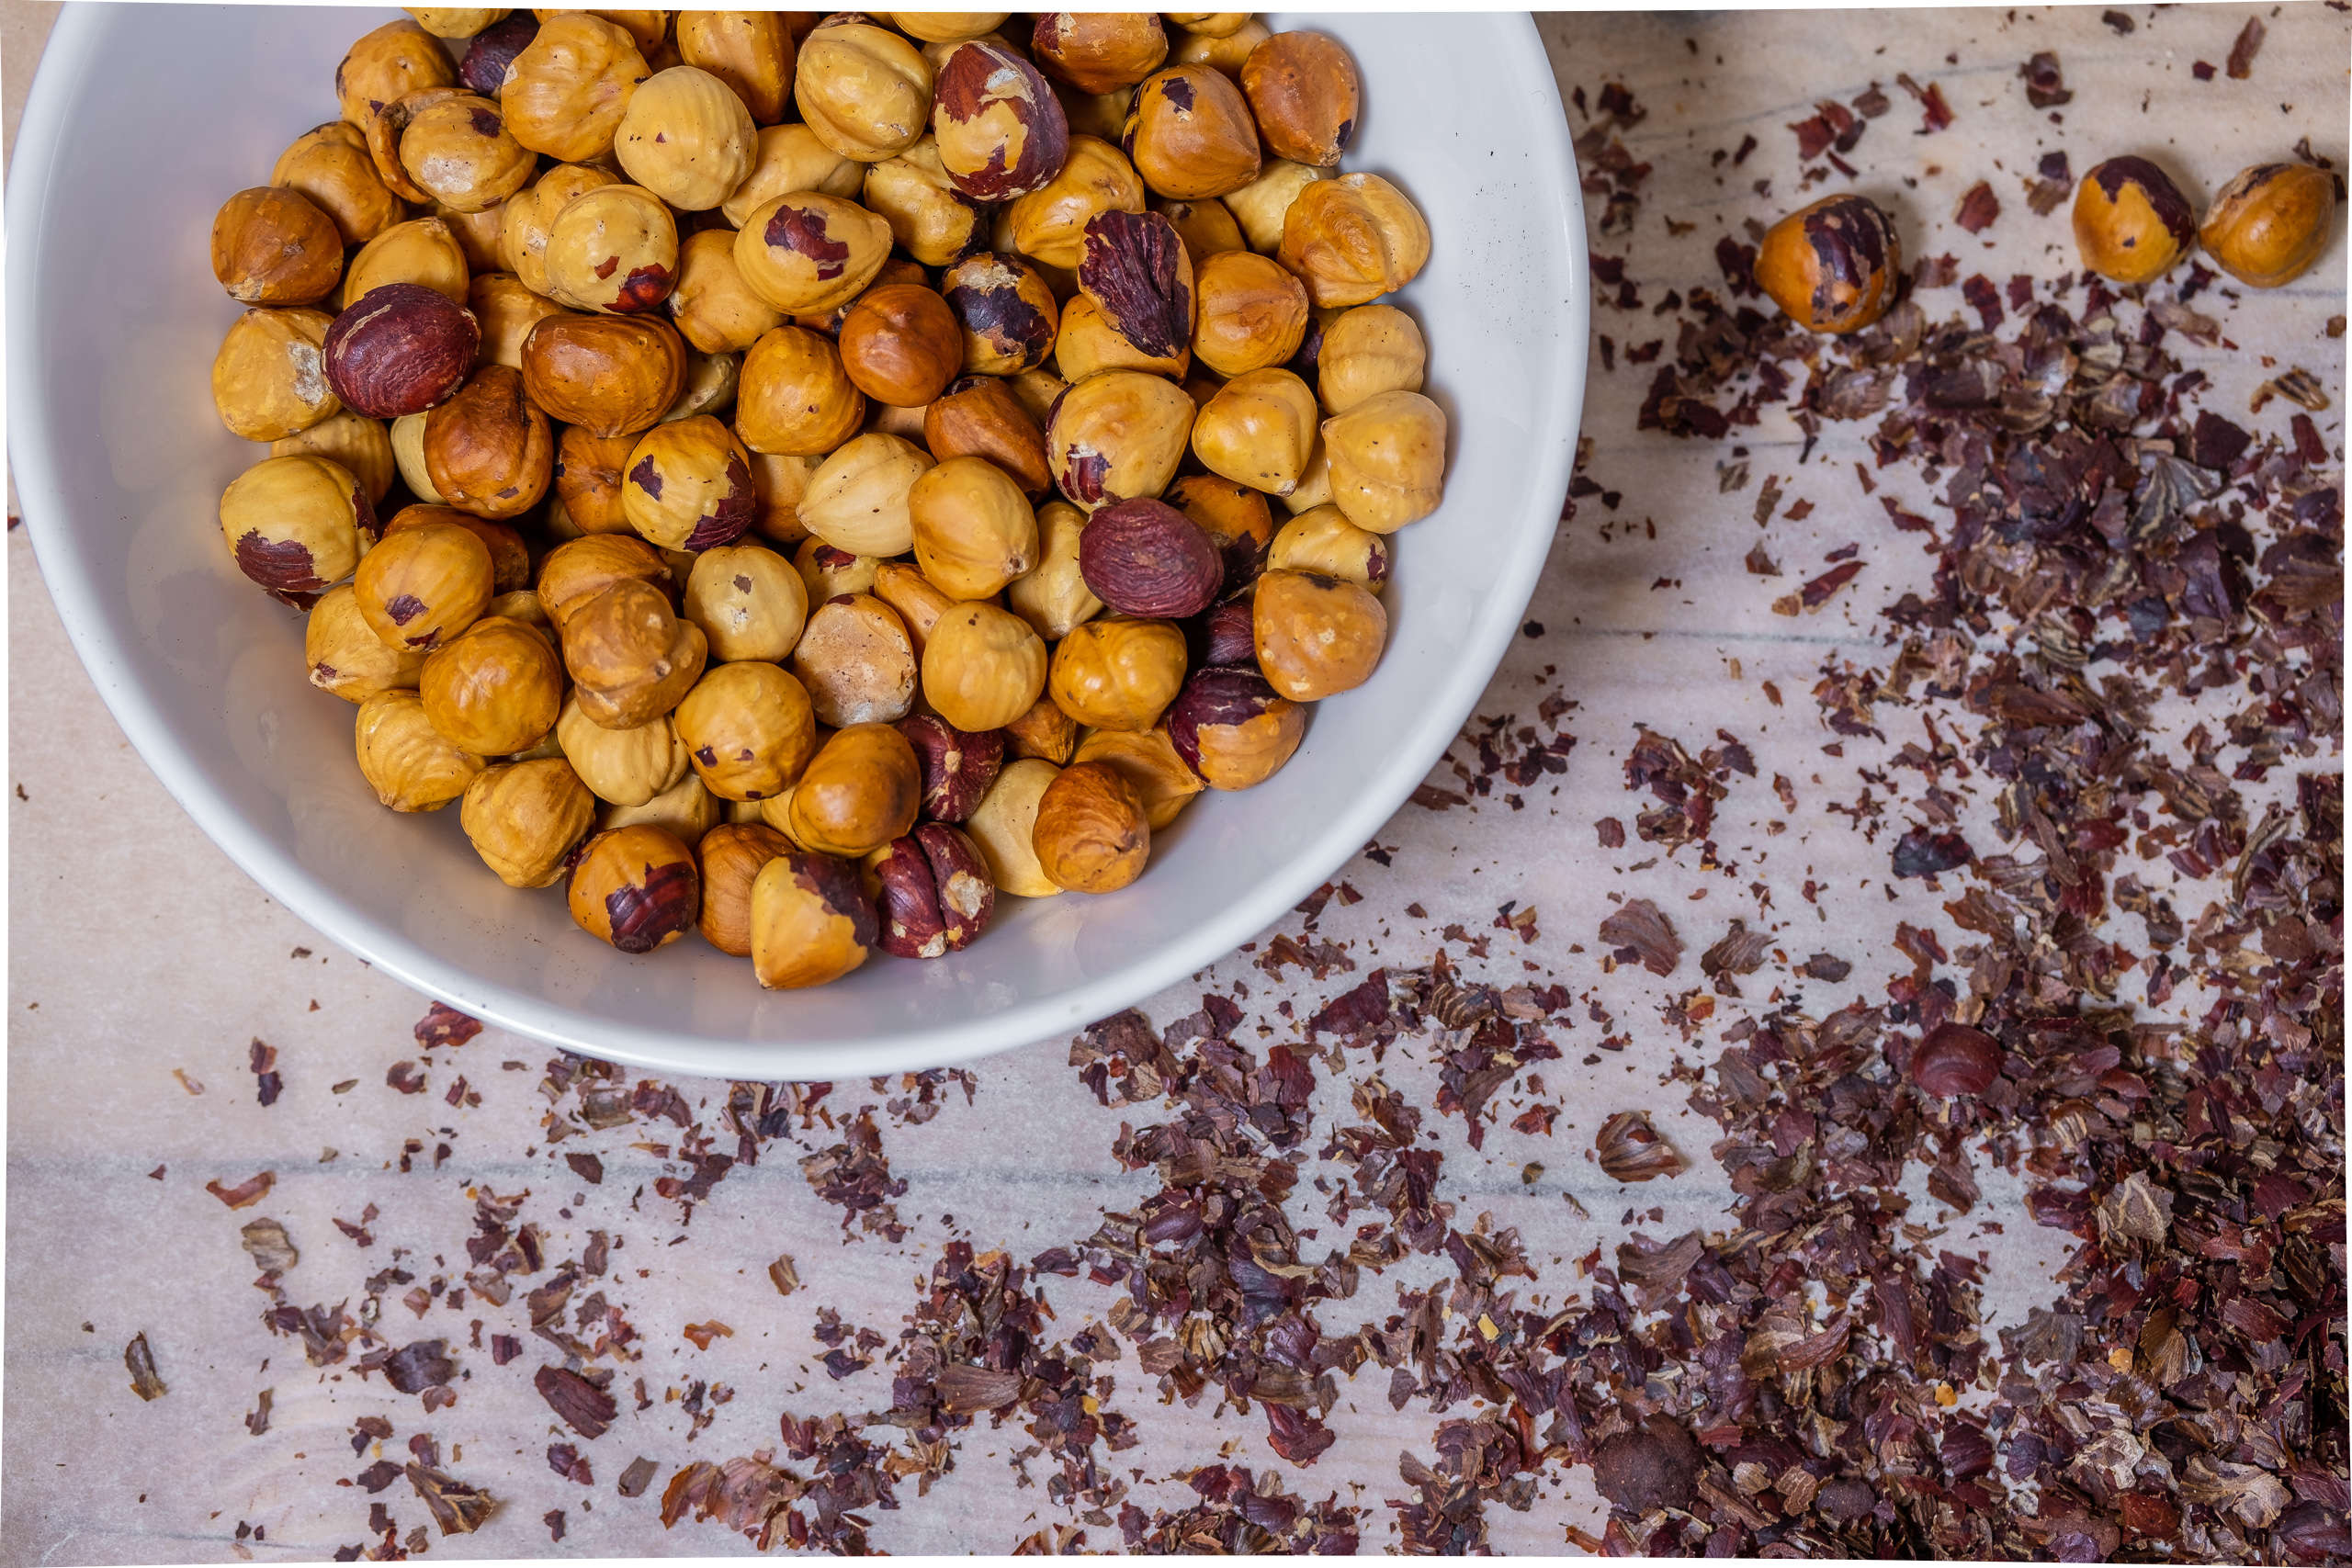 Roasted, pealed hazelnuts